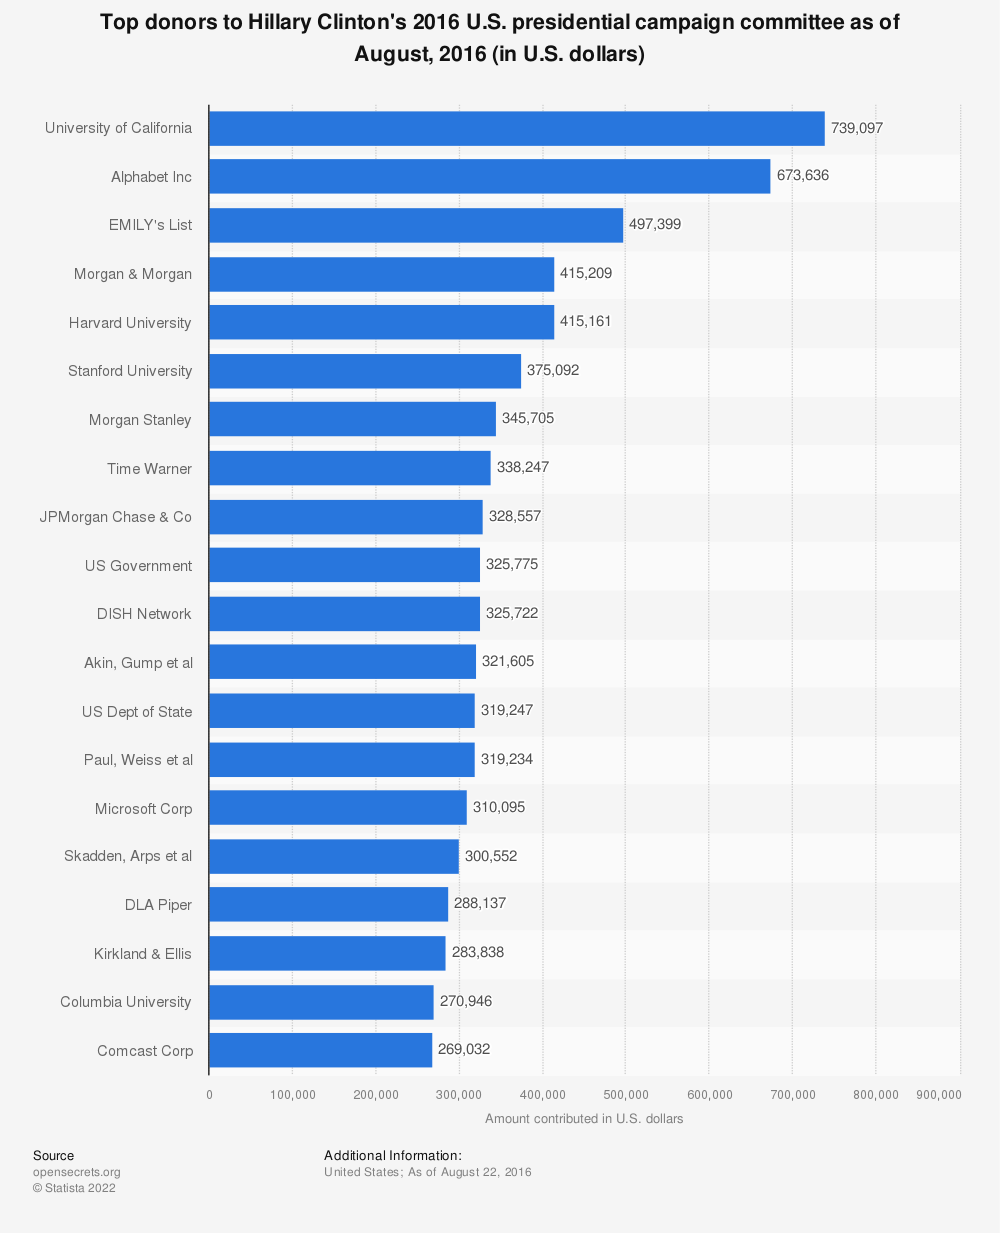 Statistic: Top donors to Hillary Clinton's 2016 U.S. presidential campaign committee as of August, 2016 (in U.S. dollars) | Statista